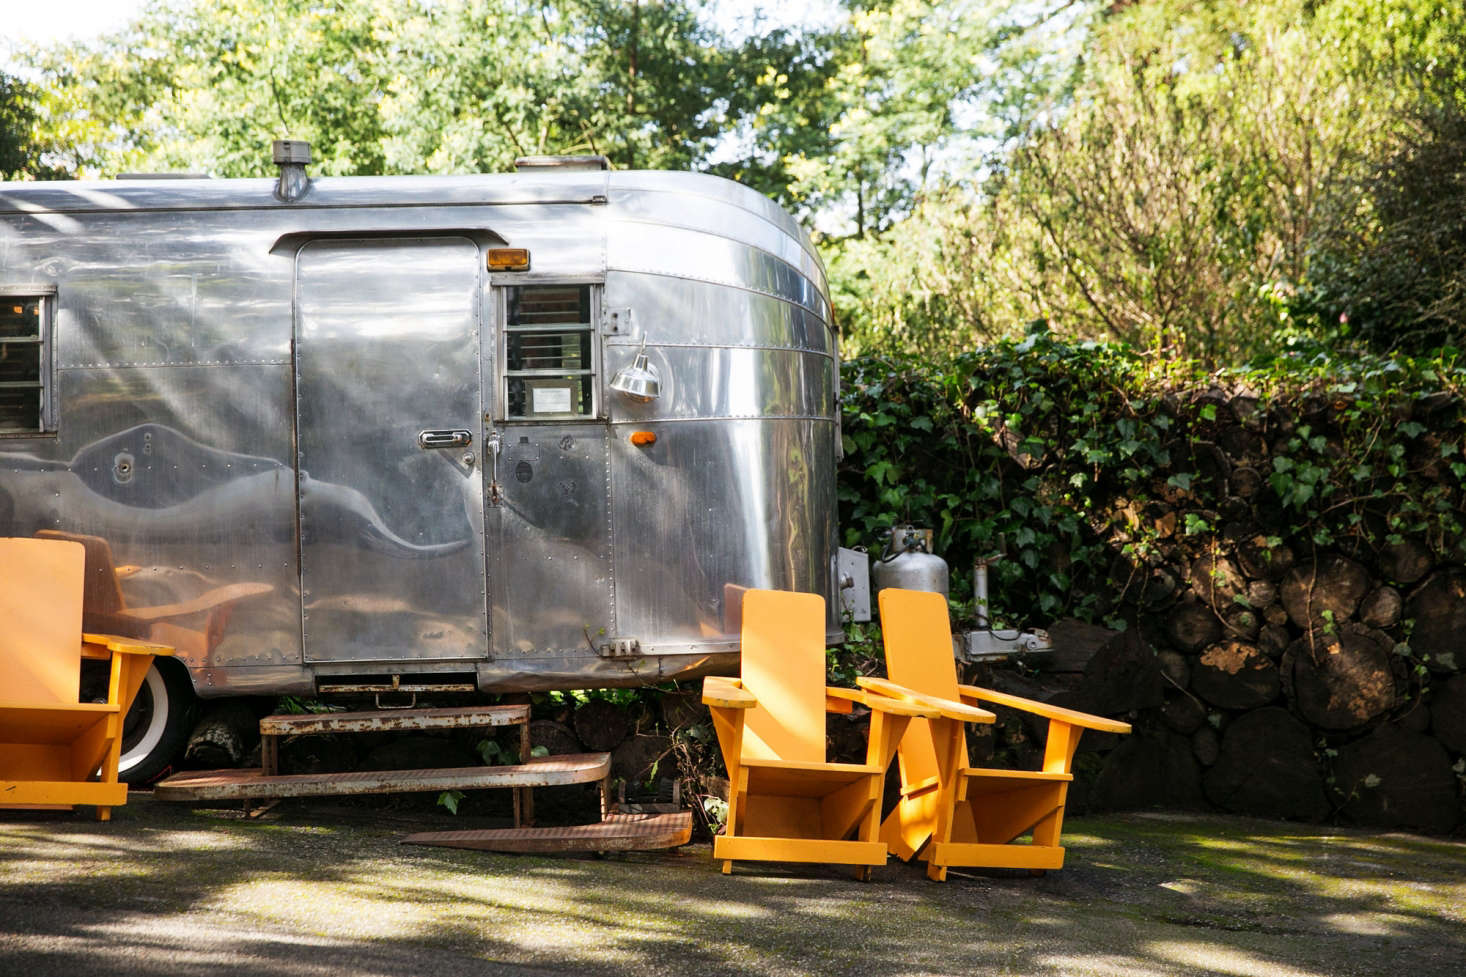 A large Airstream trailer serves as an office and check-in counter.